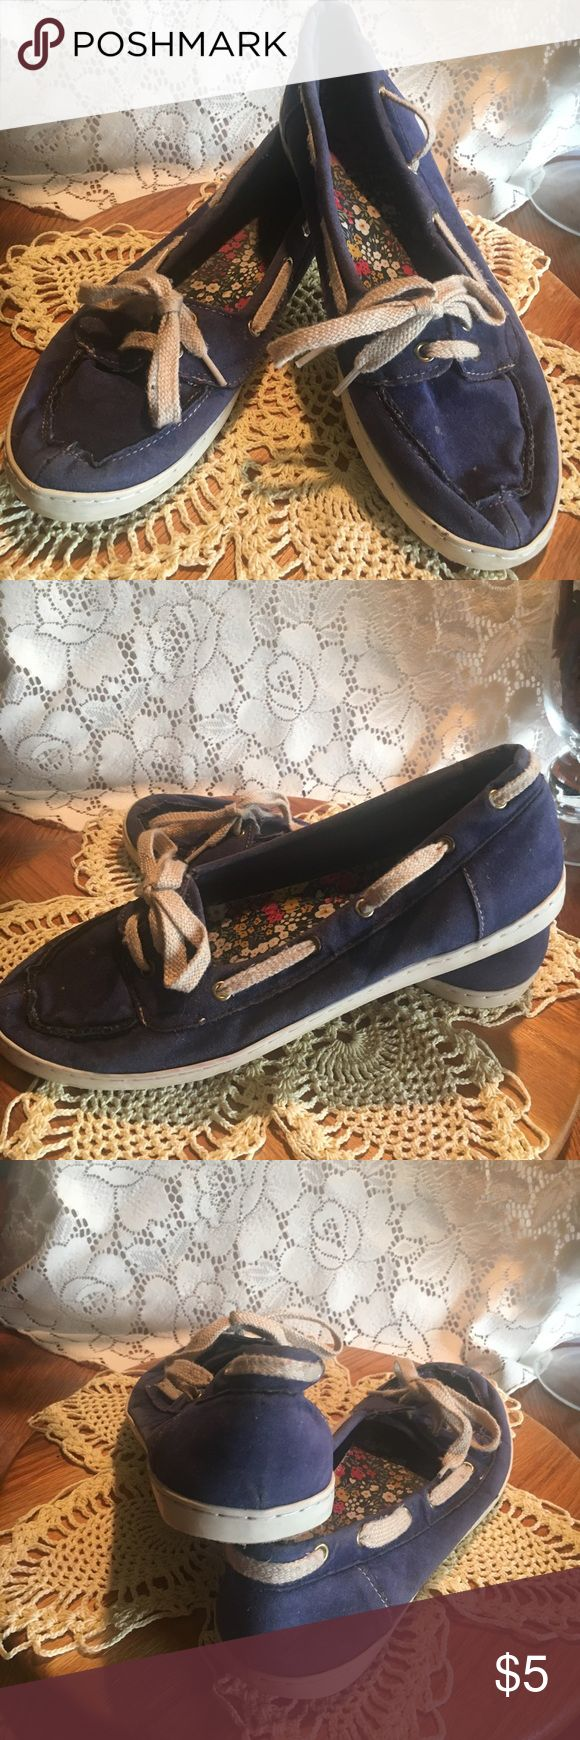 🌻K9 by Rocket Dog Boat Shoes, size 9.5, box D K9 by Rocket Dog Boat Shoes, size 9.5, box D. Blue boat shoes that show lots if wear. K9 by Rocket Dog Shoes